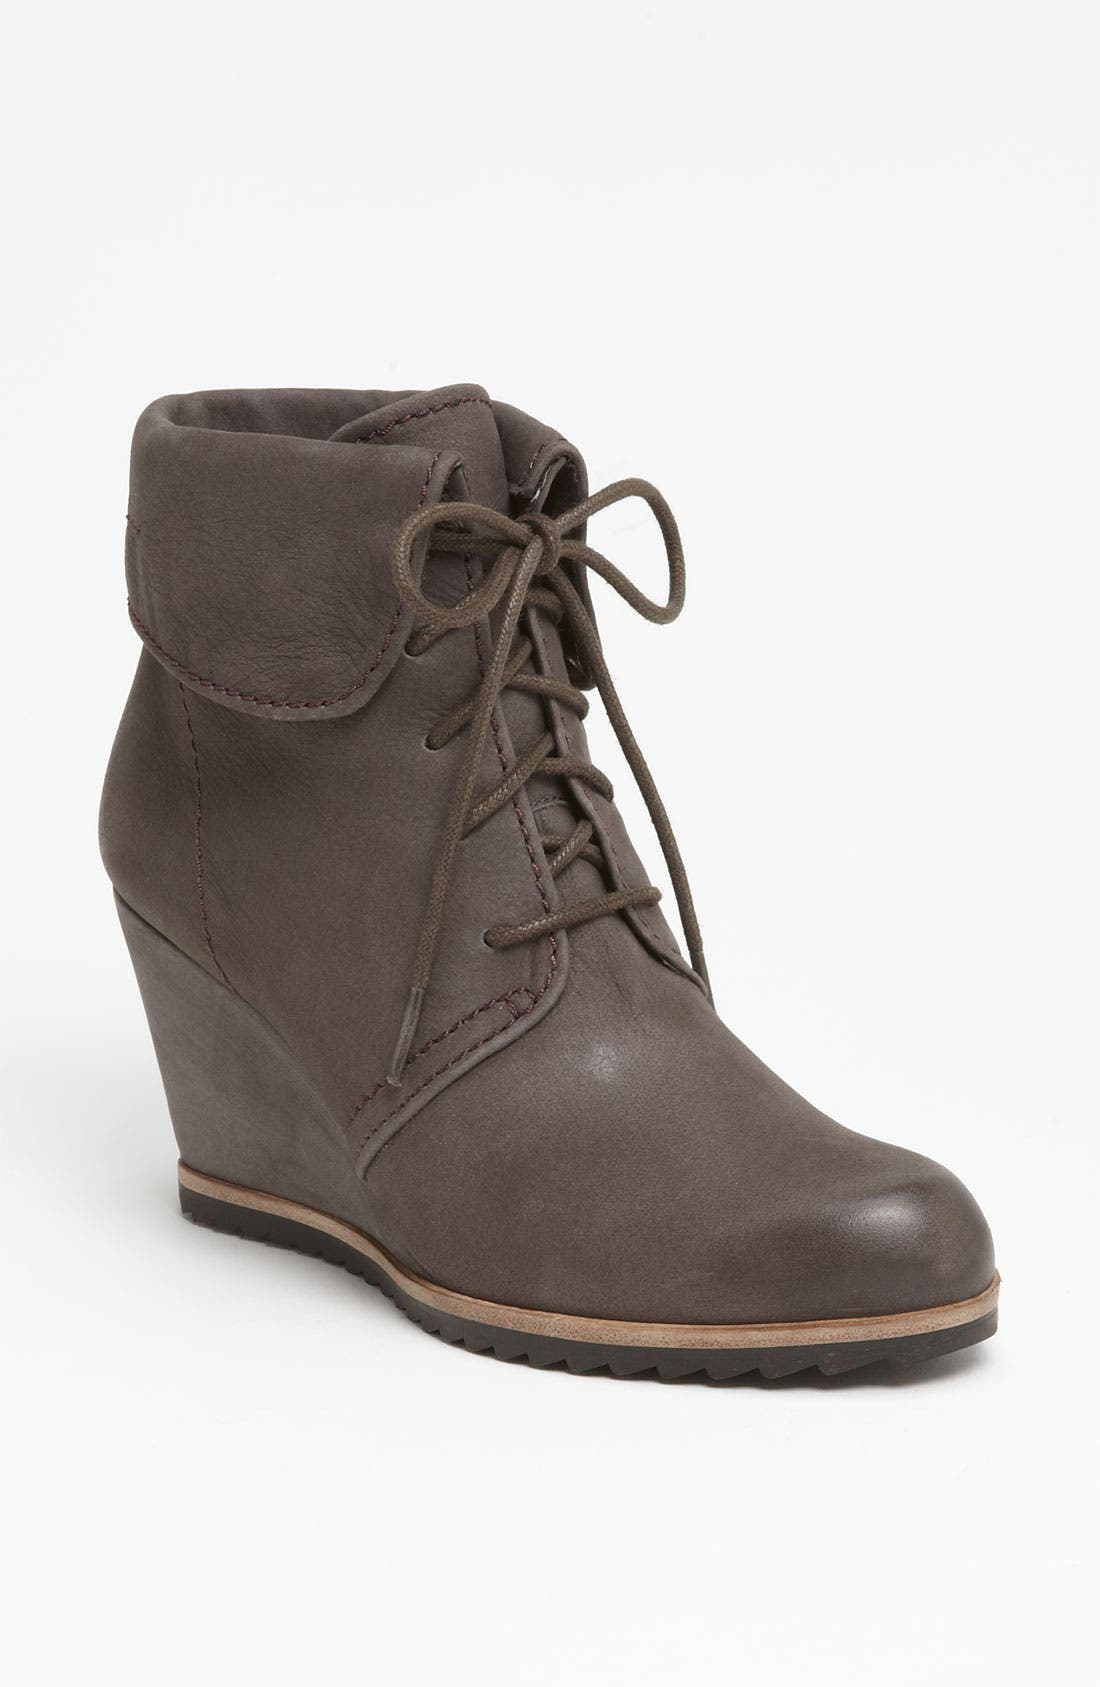 Alternate Image 1 Selected - Biala 'Ashby' Collared Wedge Bootie